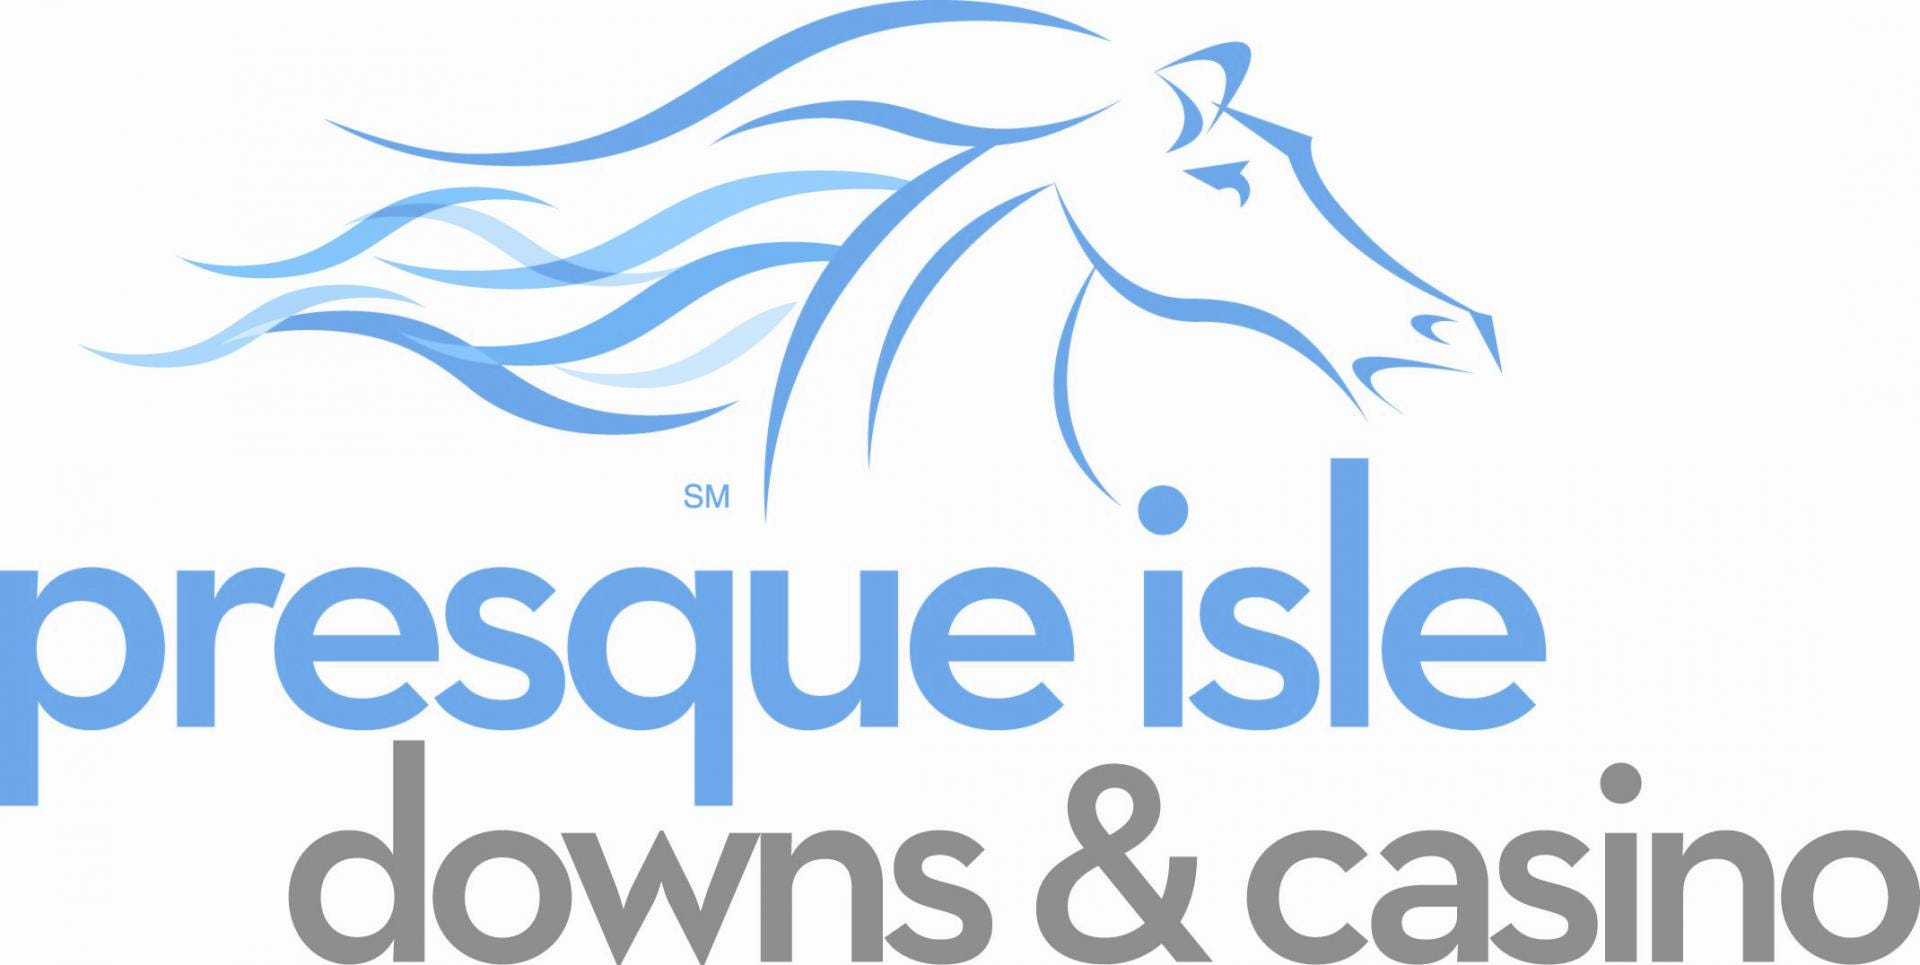 Presqueisle casino 2.01 by casino generated net statistics usage version webalizer